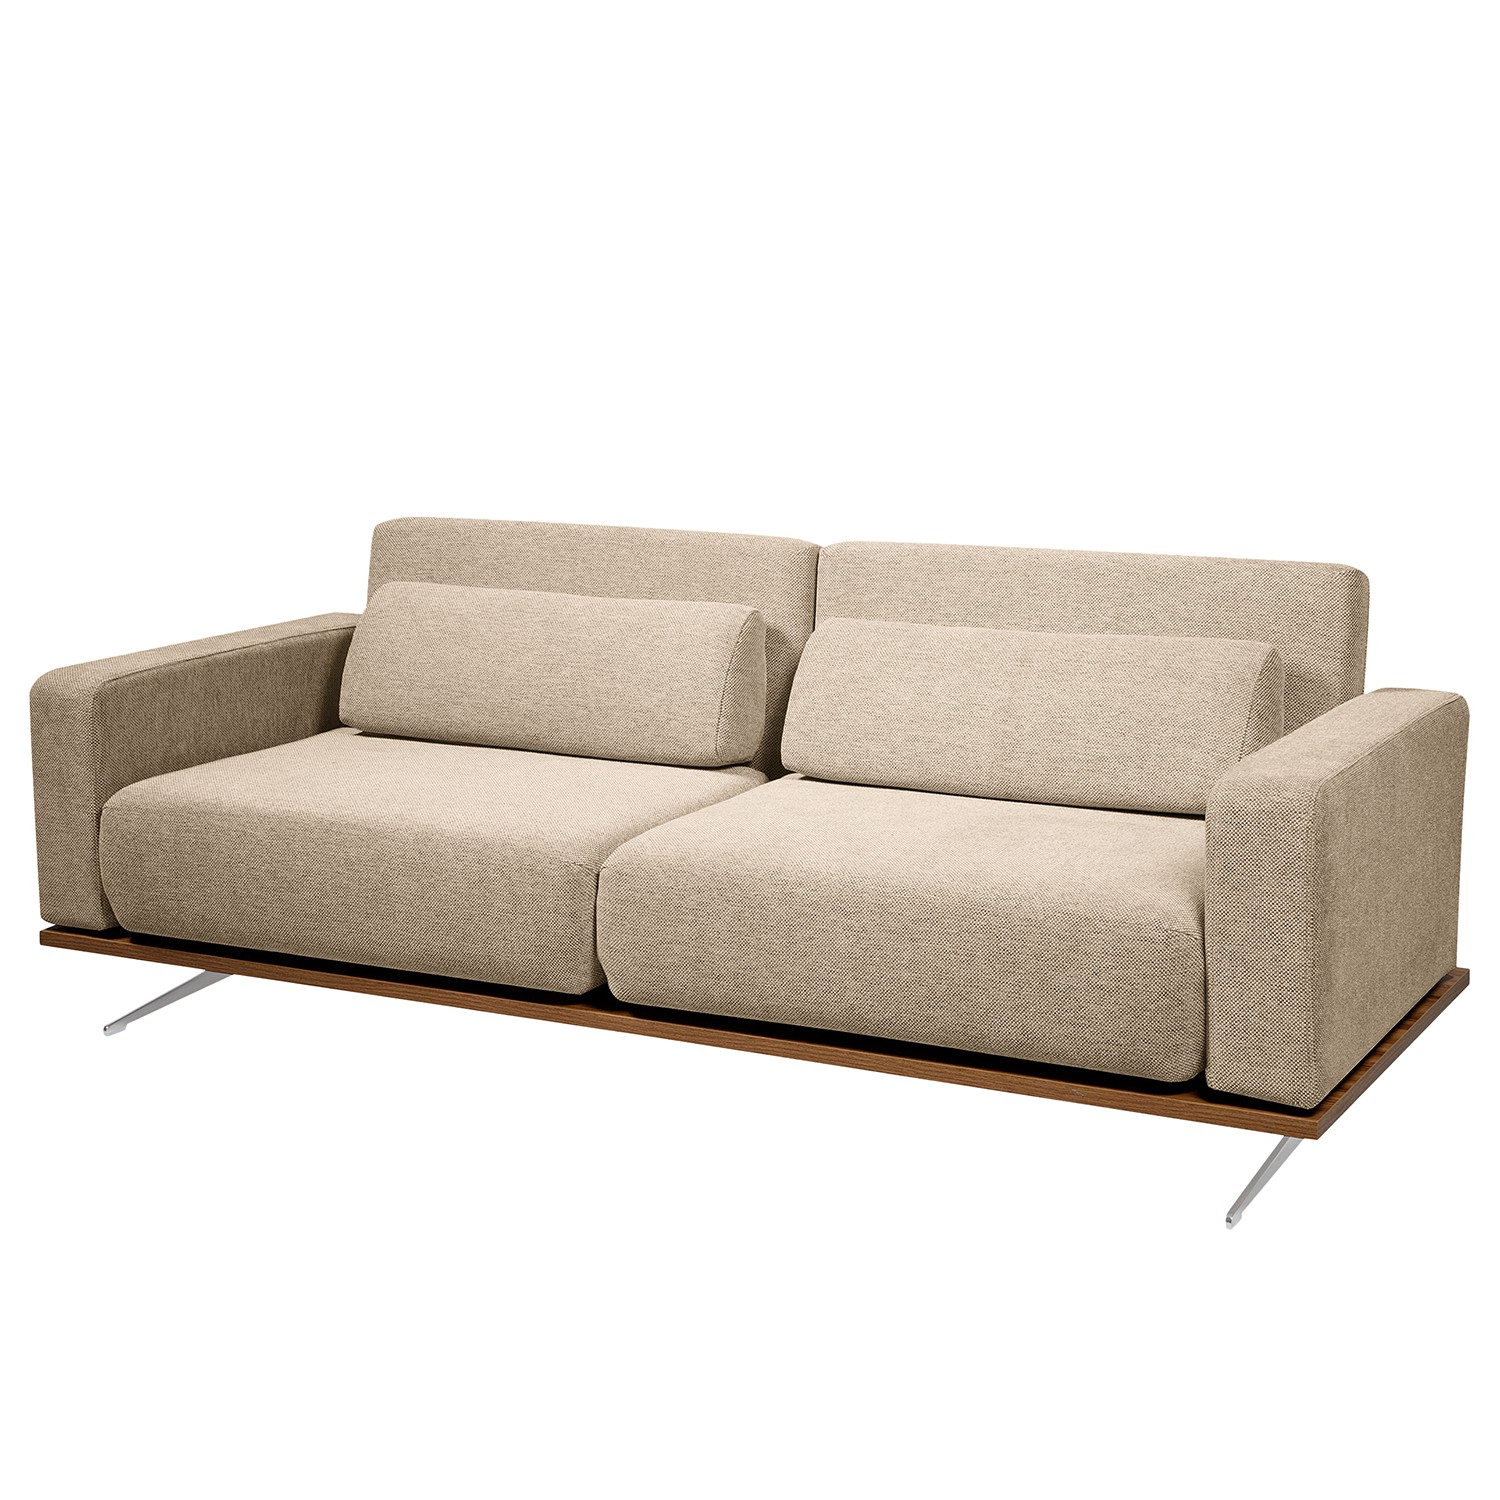 Schlafsofa Copperfield Schlafsofa Copperfield Ii Webstoff Kaufen | Home24